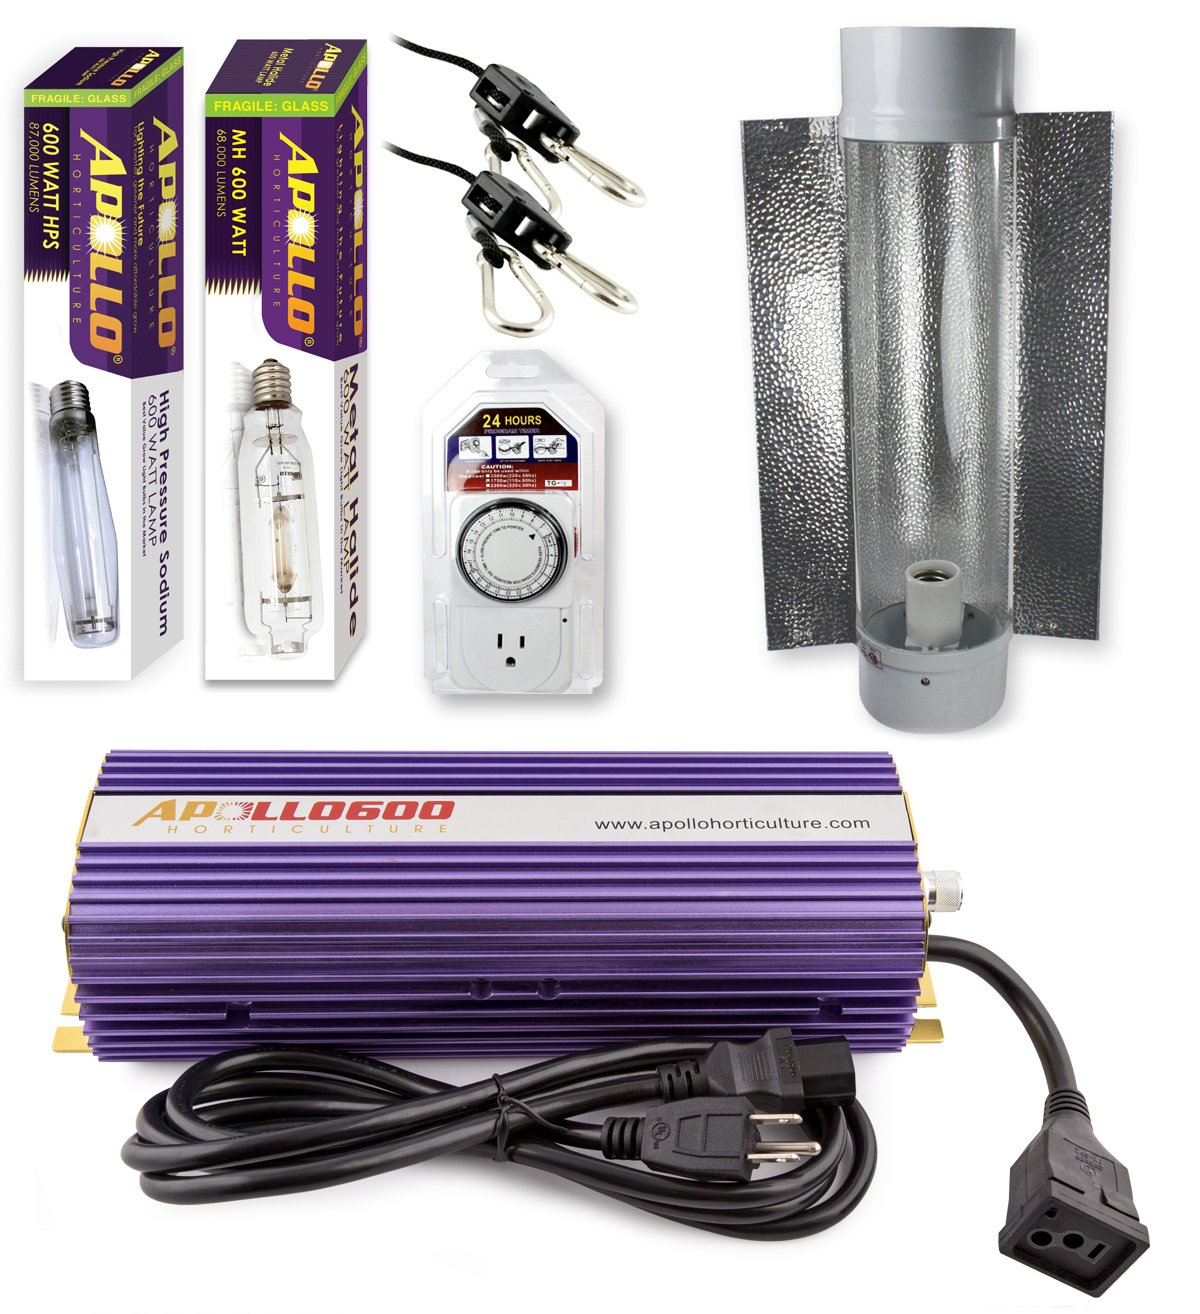 Apollo Horticulture GLK600CT24E 600 Watt Grow Light Digital Dimmable HPS MH System for Plants Cool Tube Hood Set